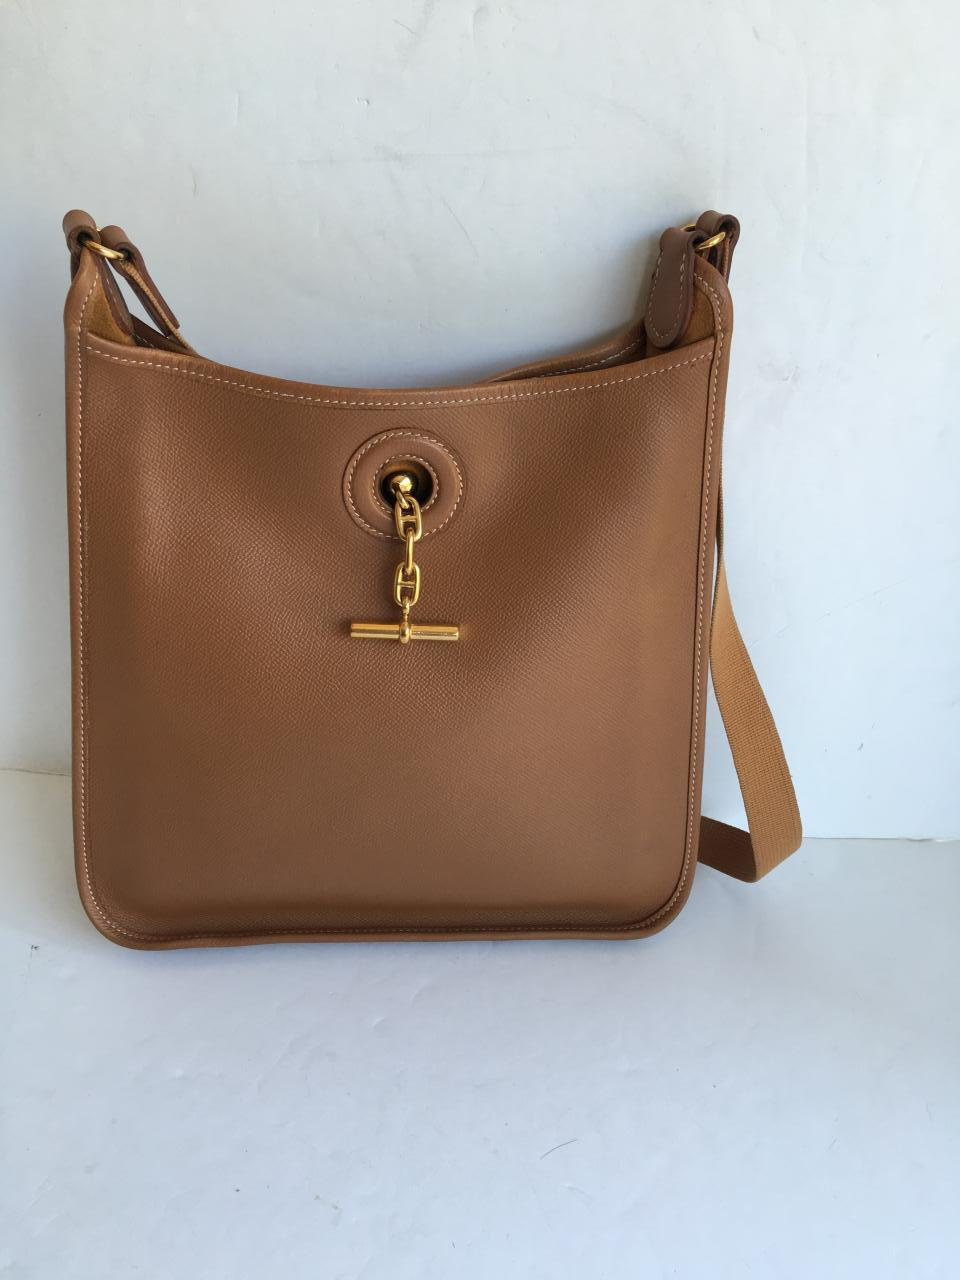 original hermes bags - OTHER HERM��S